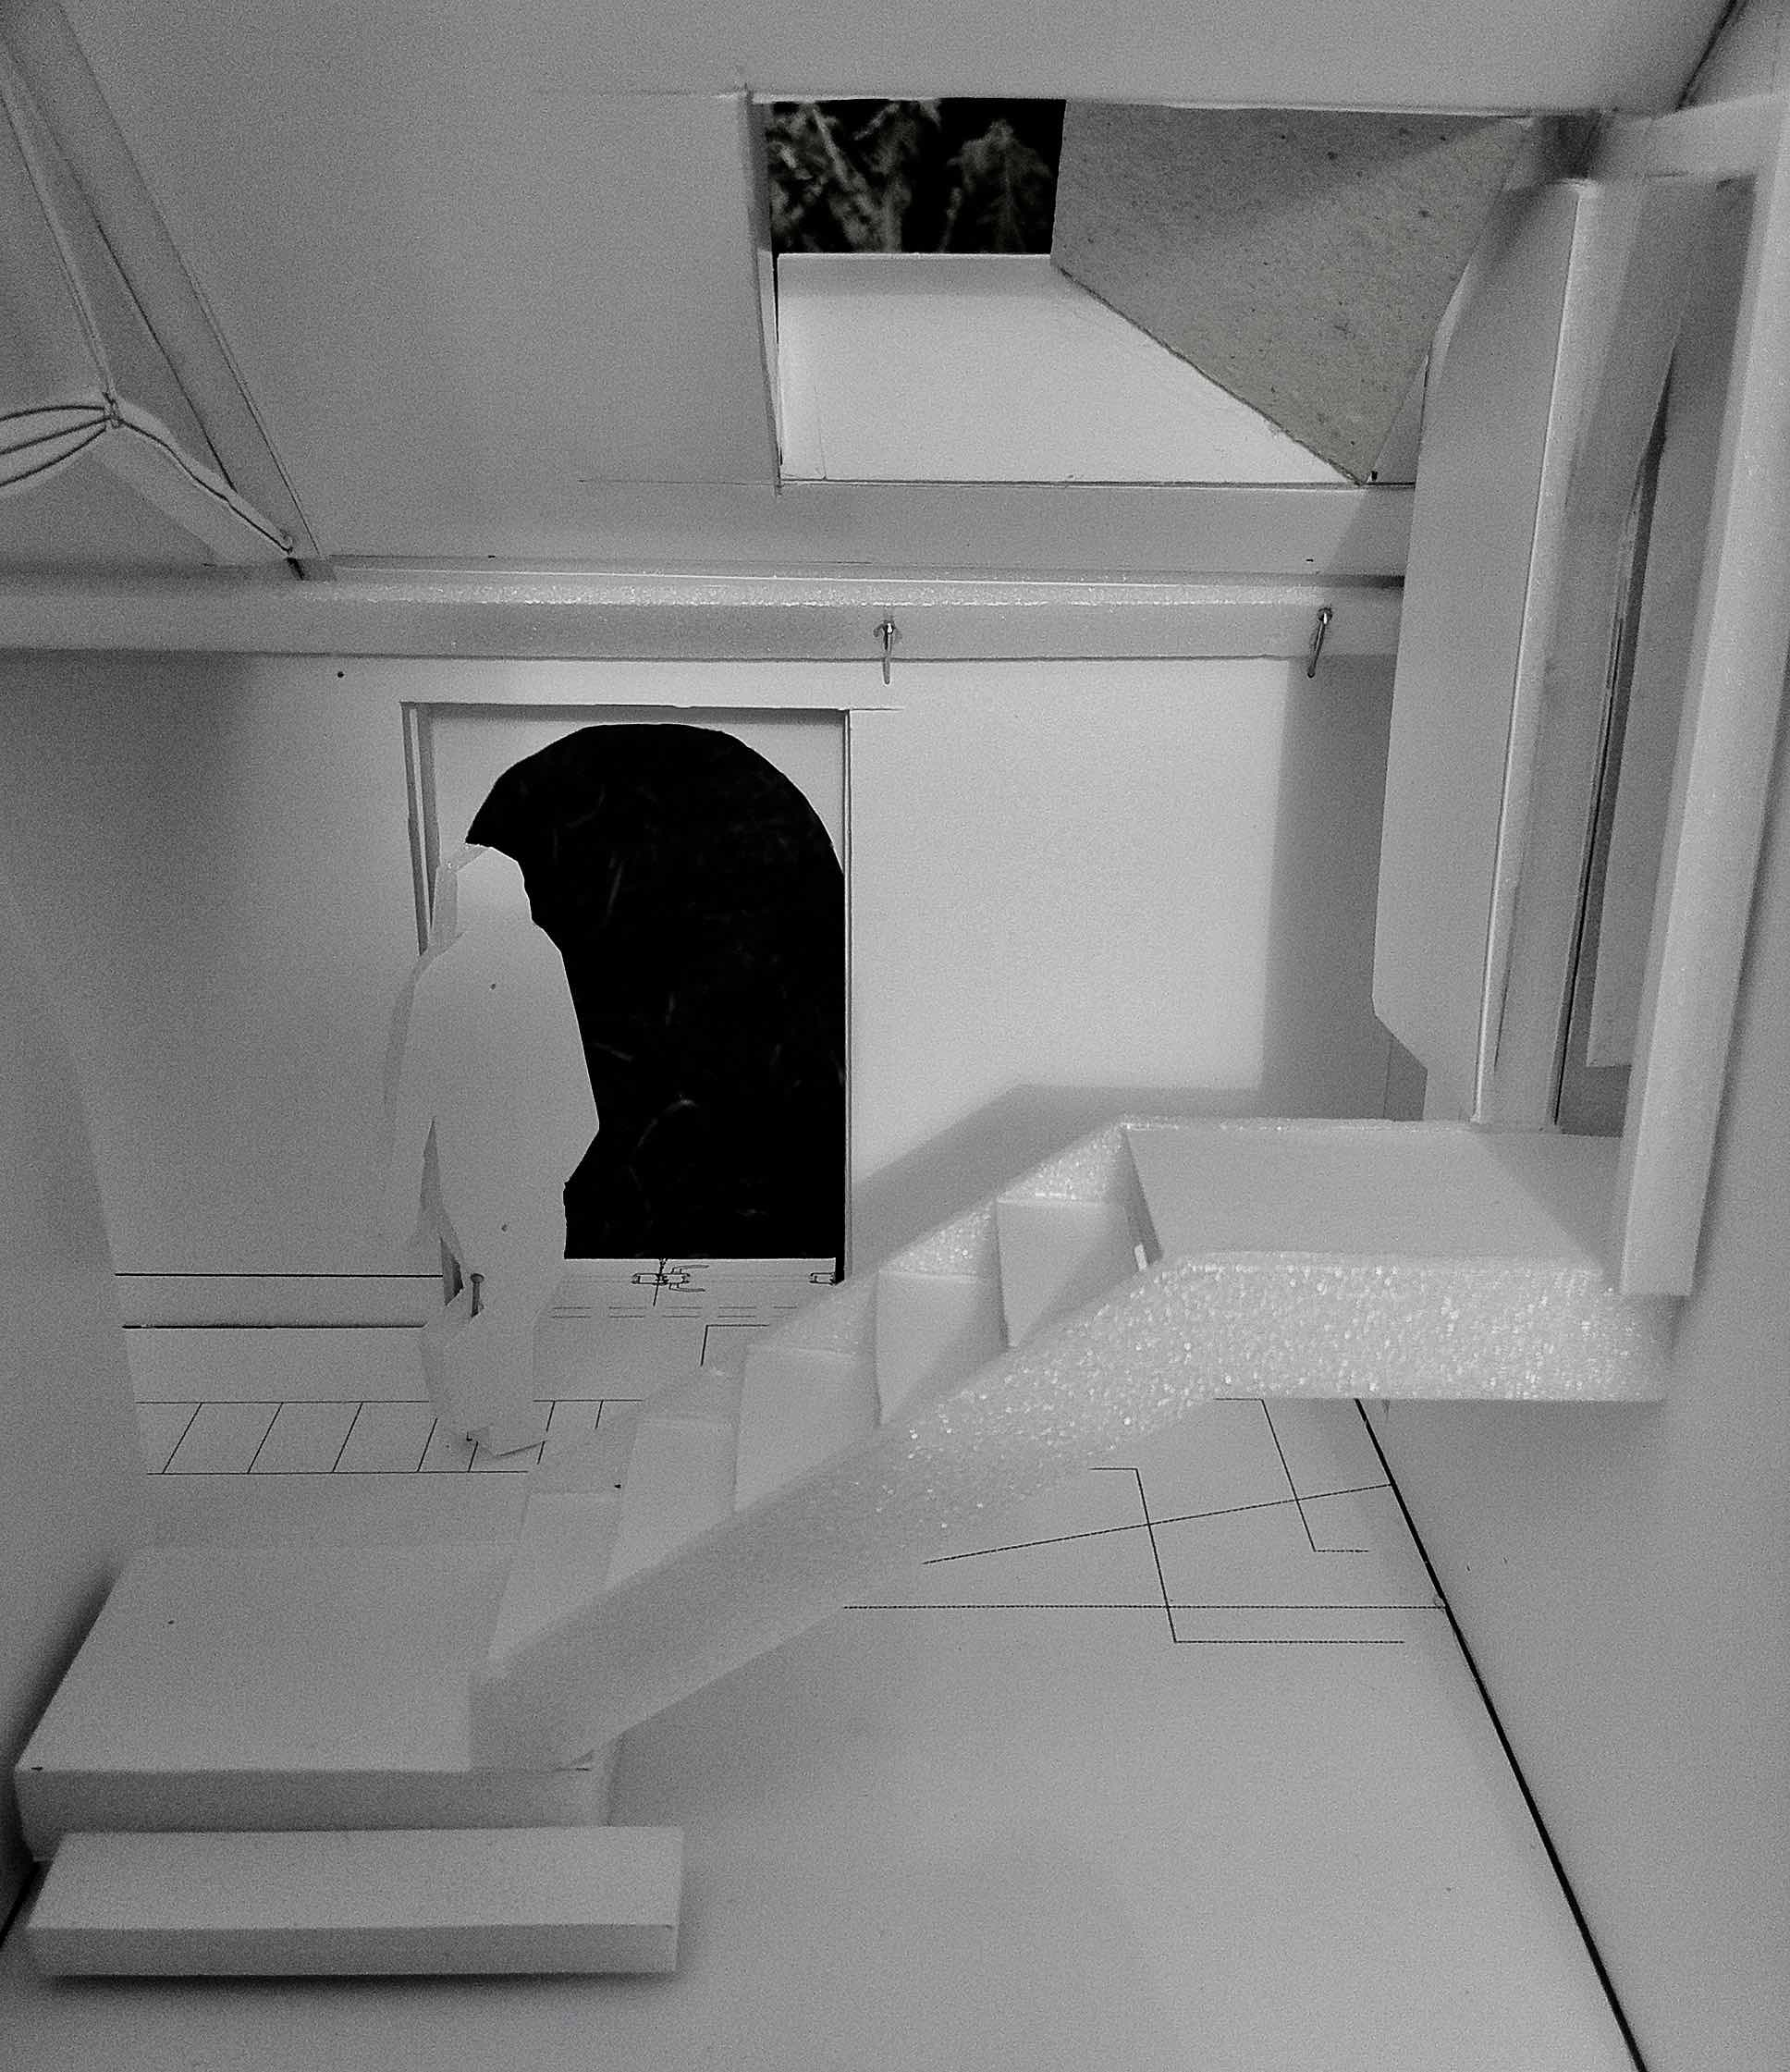 028_stair2